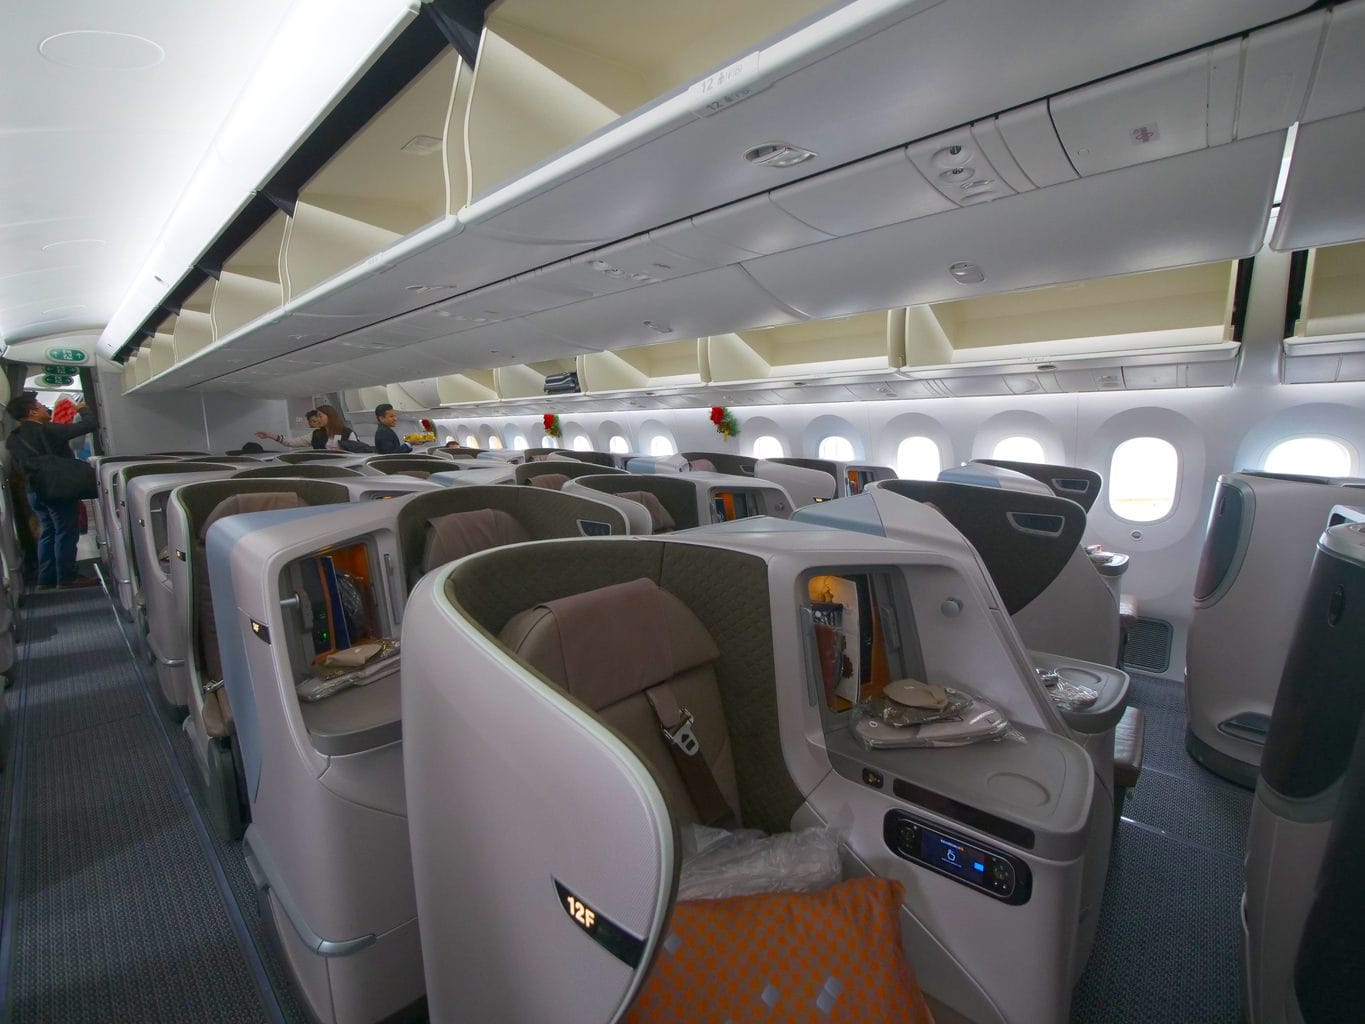 Boarding the Singapore Airlines Boeing 787-10 Business Class